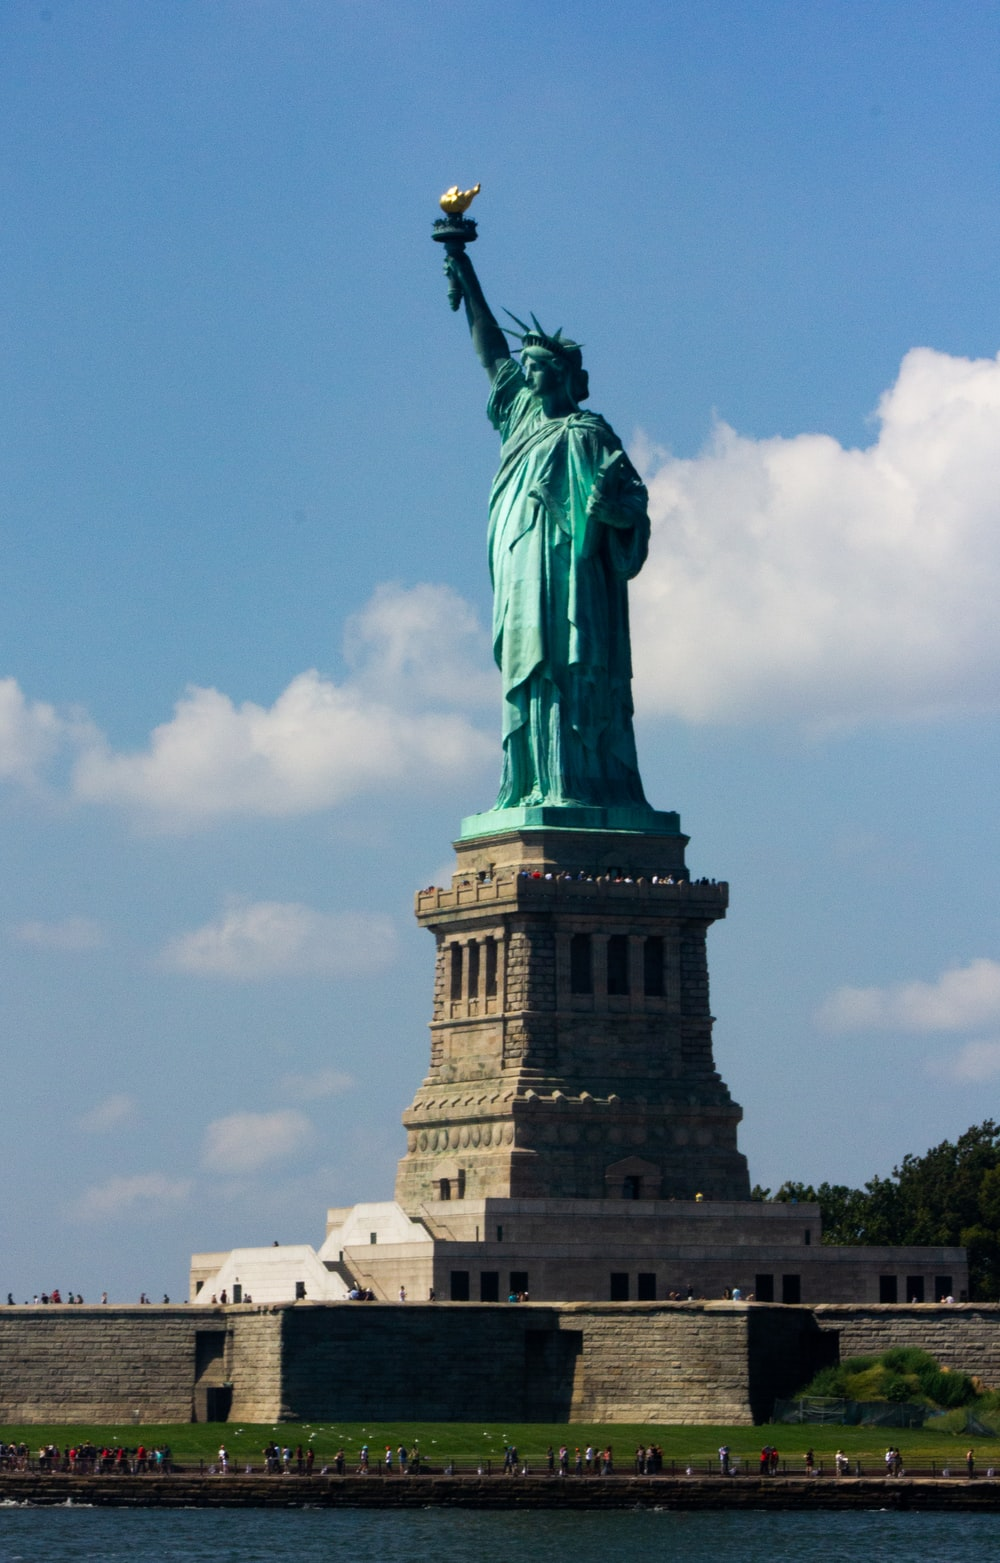 statue of liberty beside a body of water during daytime